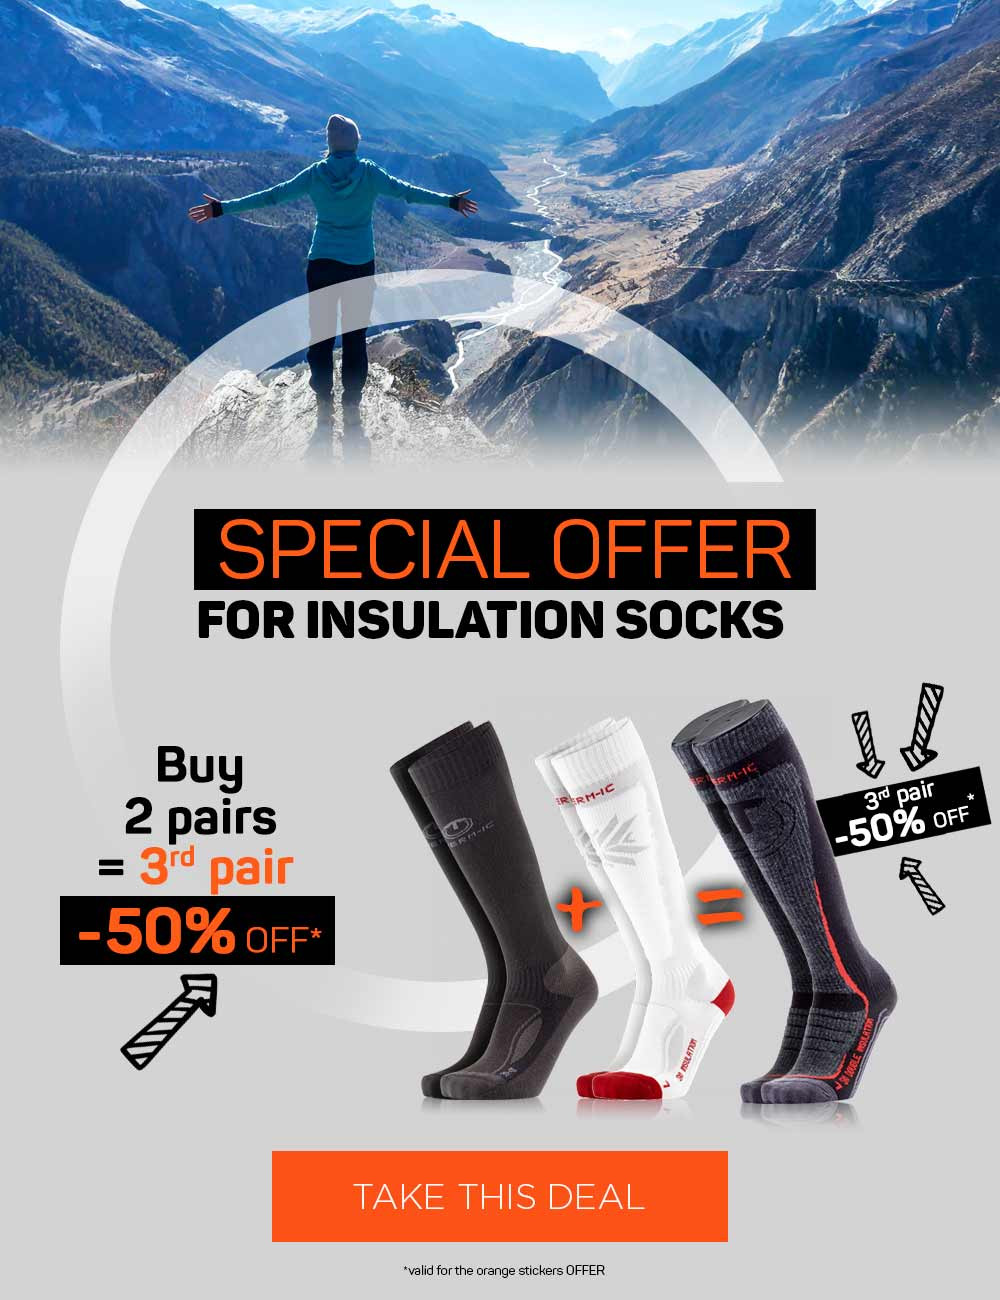 Buy two pairs of Insulation socks and get the 3rd pair 50% off